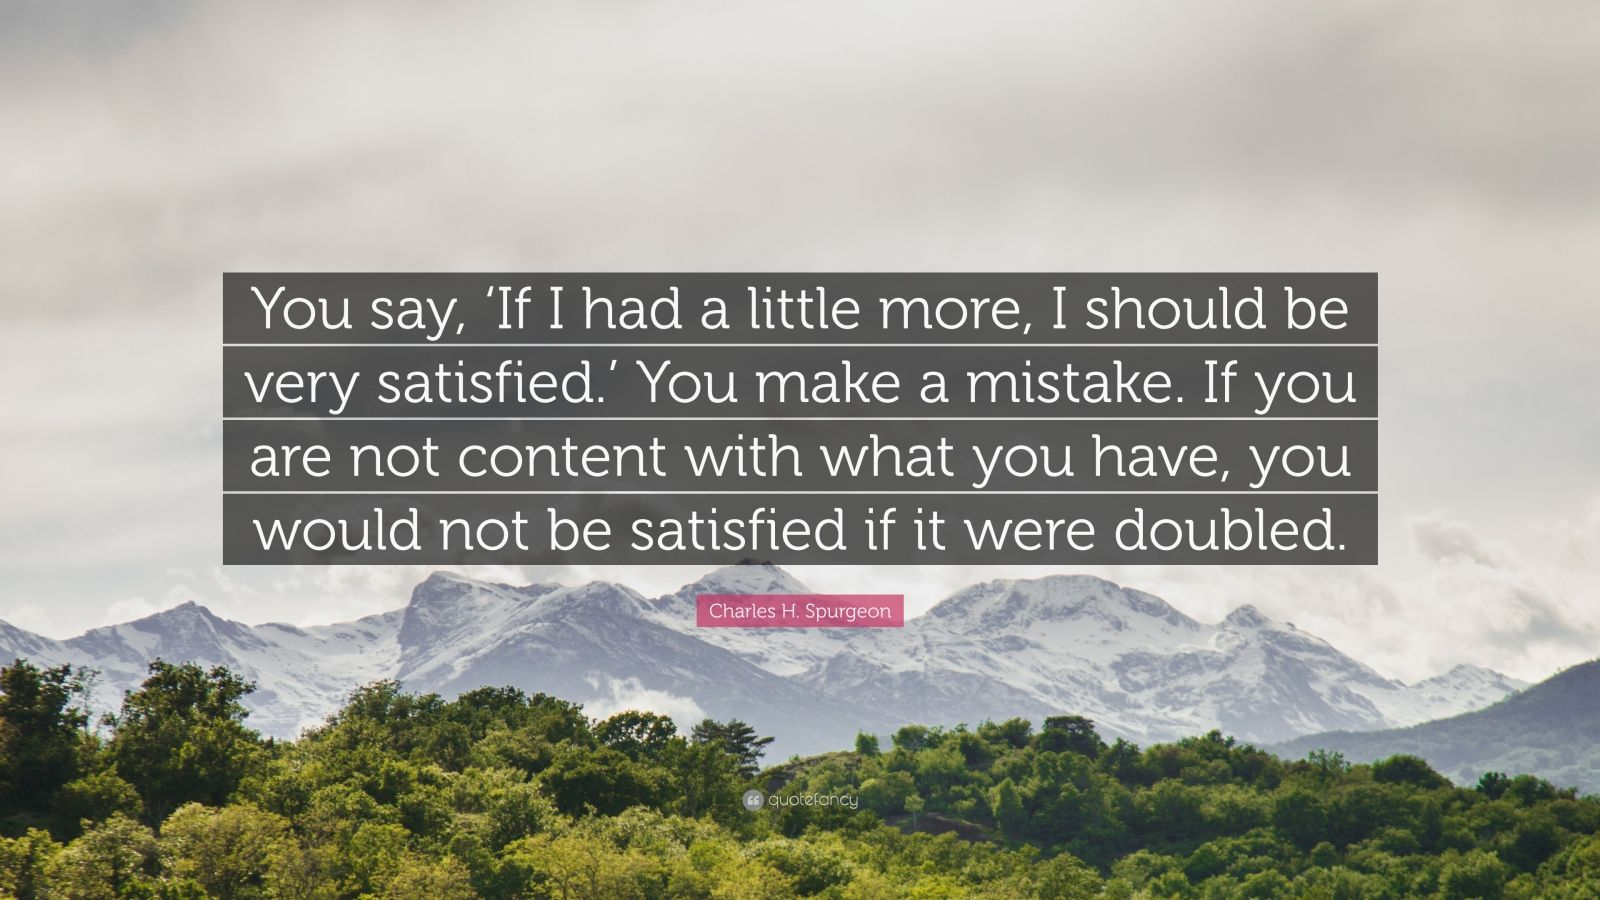 """Charles H. Spurgeon Quote: """"You say, 'If I had a little more, I should be very satisfied.' You make a mistake. If you are not content with what you have, you would not be satisfied if it were doubled."""""""